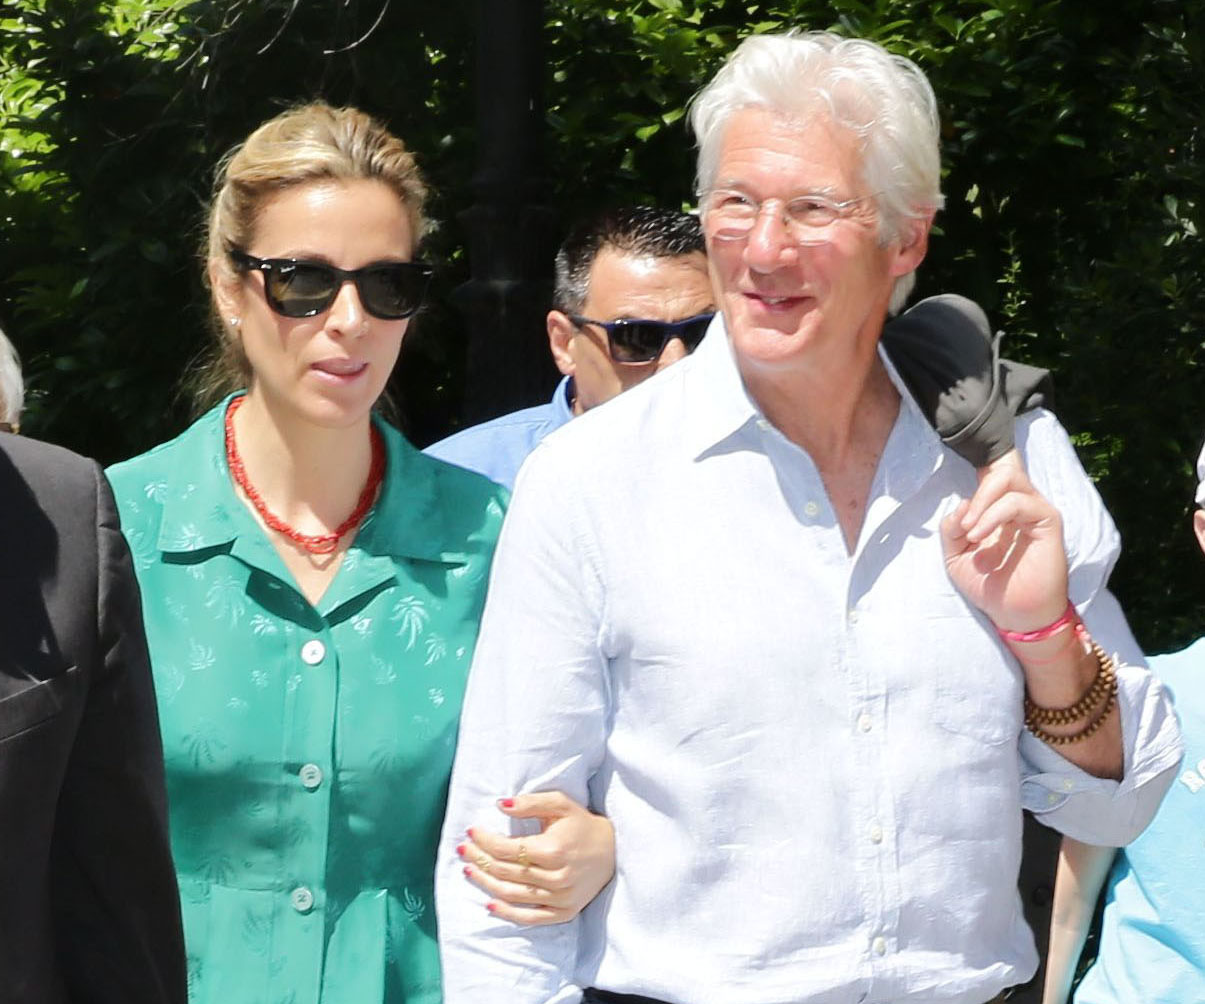 Richard Gere and Alejandra Silva are married